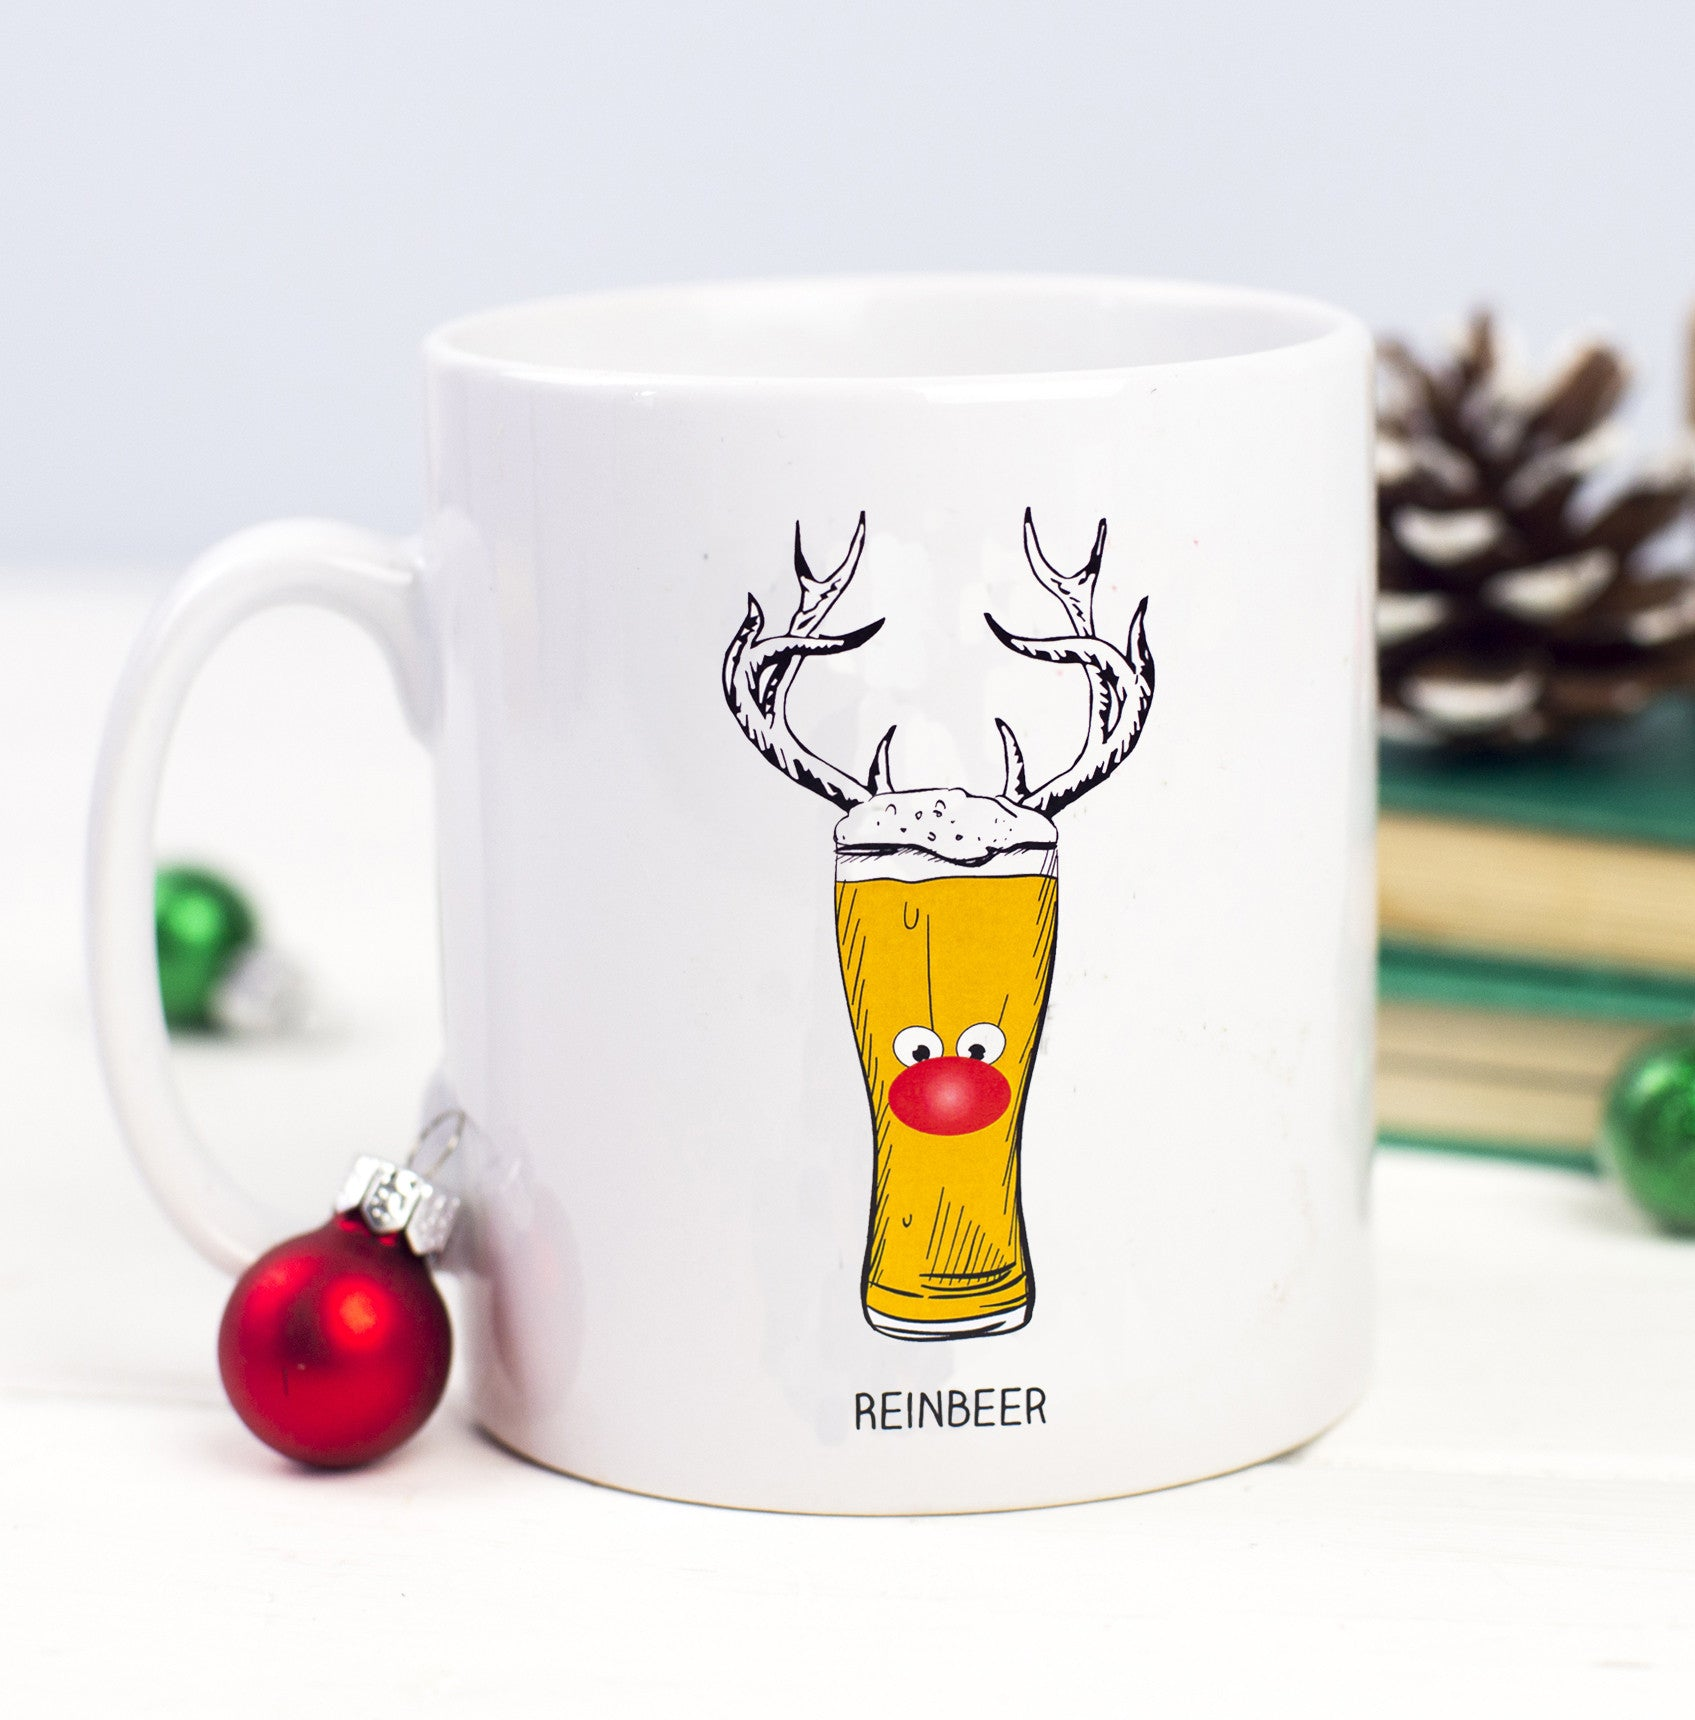 DISCONTINUED - 'Reinbeer' Christmas Mug